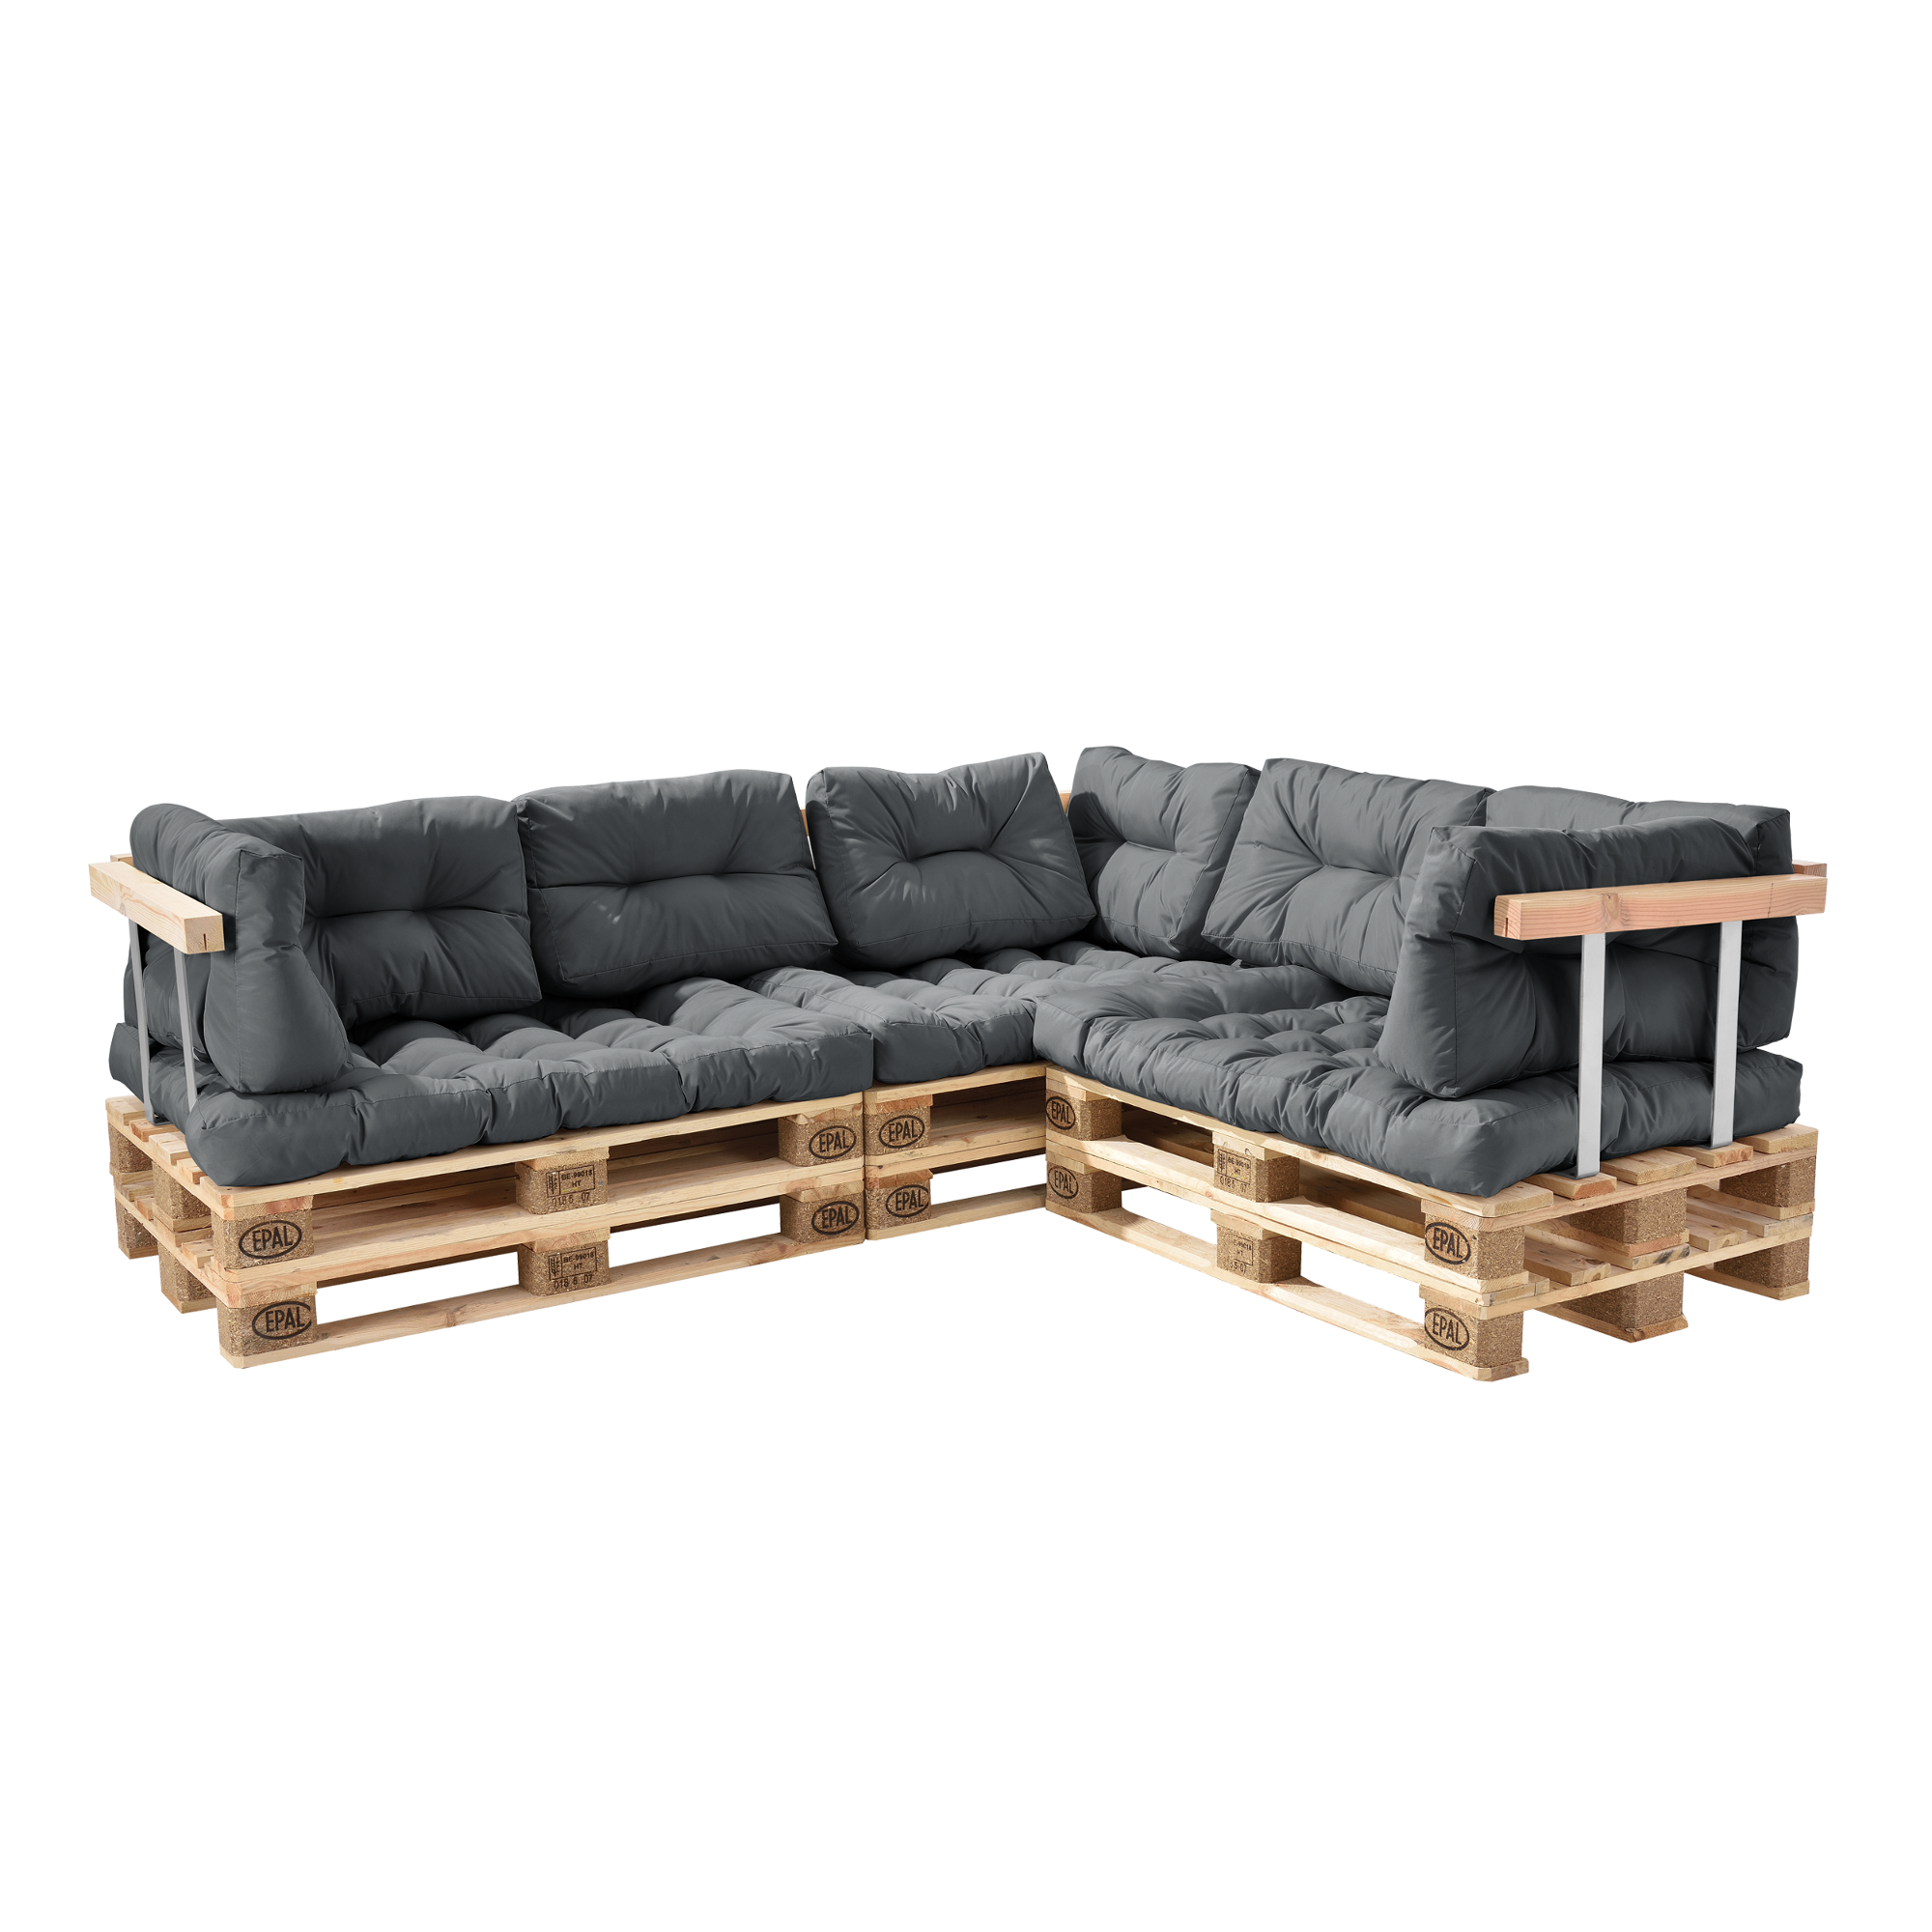 euro paletten sofa hellgrau ecksofa mit paletten polster kissen lehnen ebay. Black Bedroom Furniture Sets. Home Design Ideas